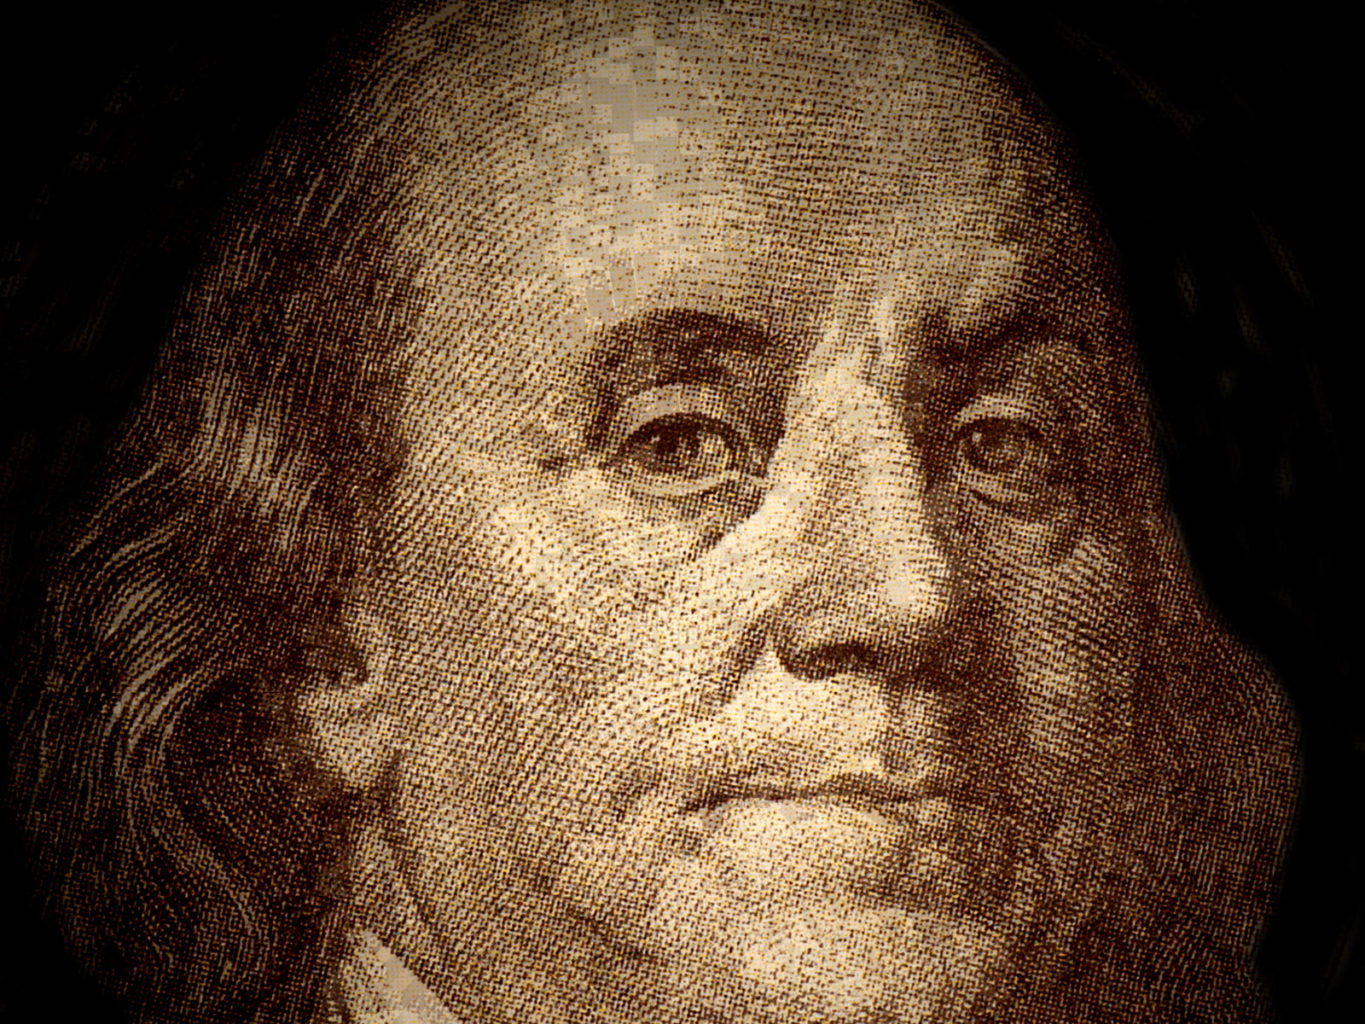 Each day, it feels like the Republic that Benjamin Franklin once spoke of is slipping further out of reach. (Courtesy photo)